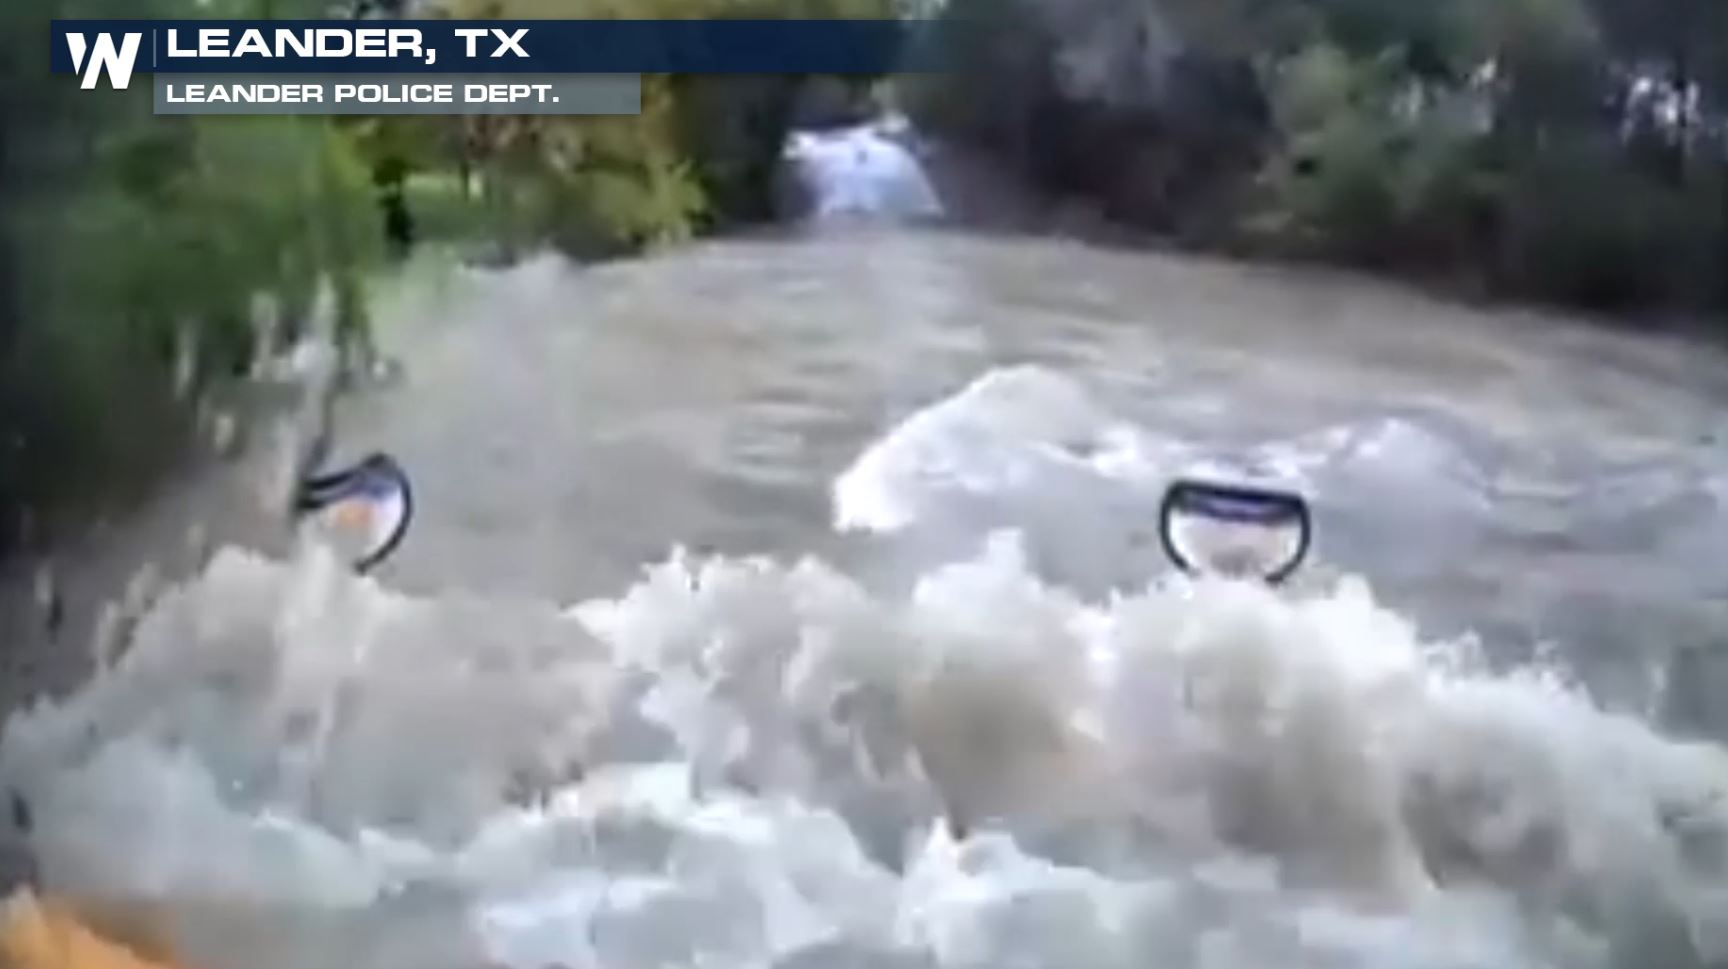 School Bus Driver Drives Through Raging Floodwaters, Swept Away